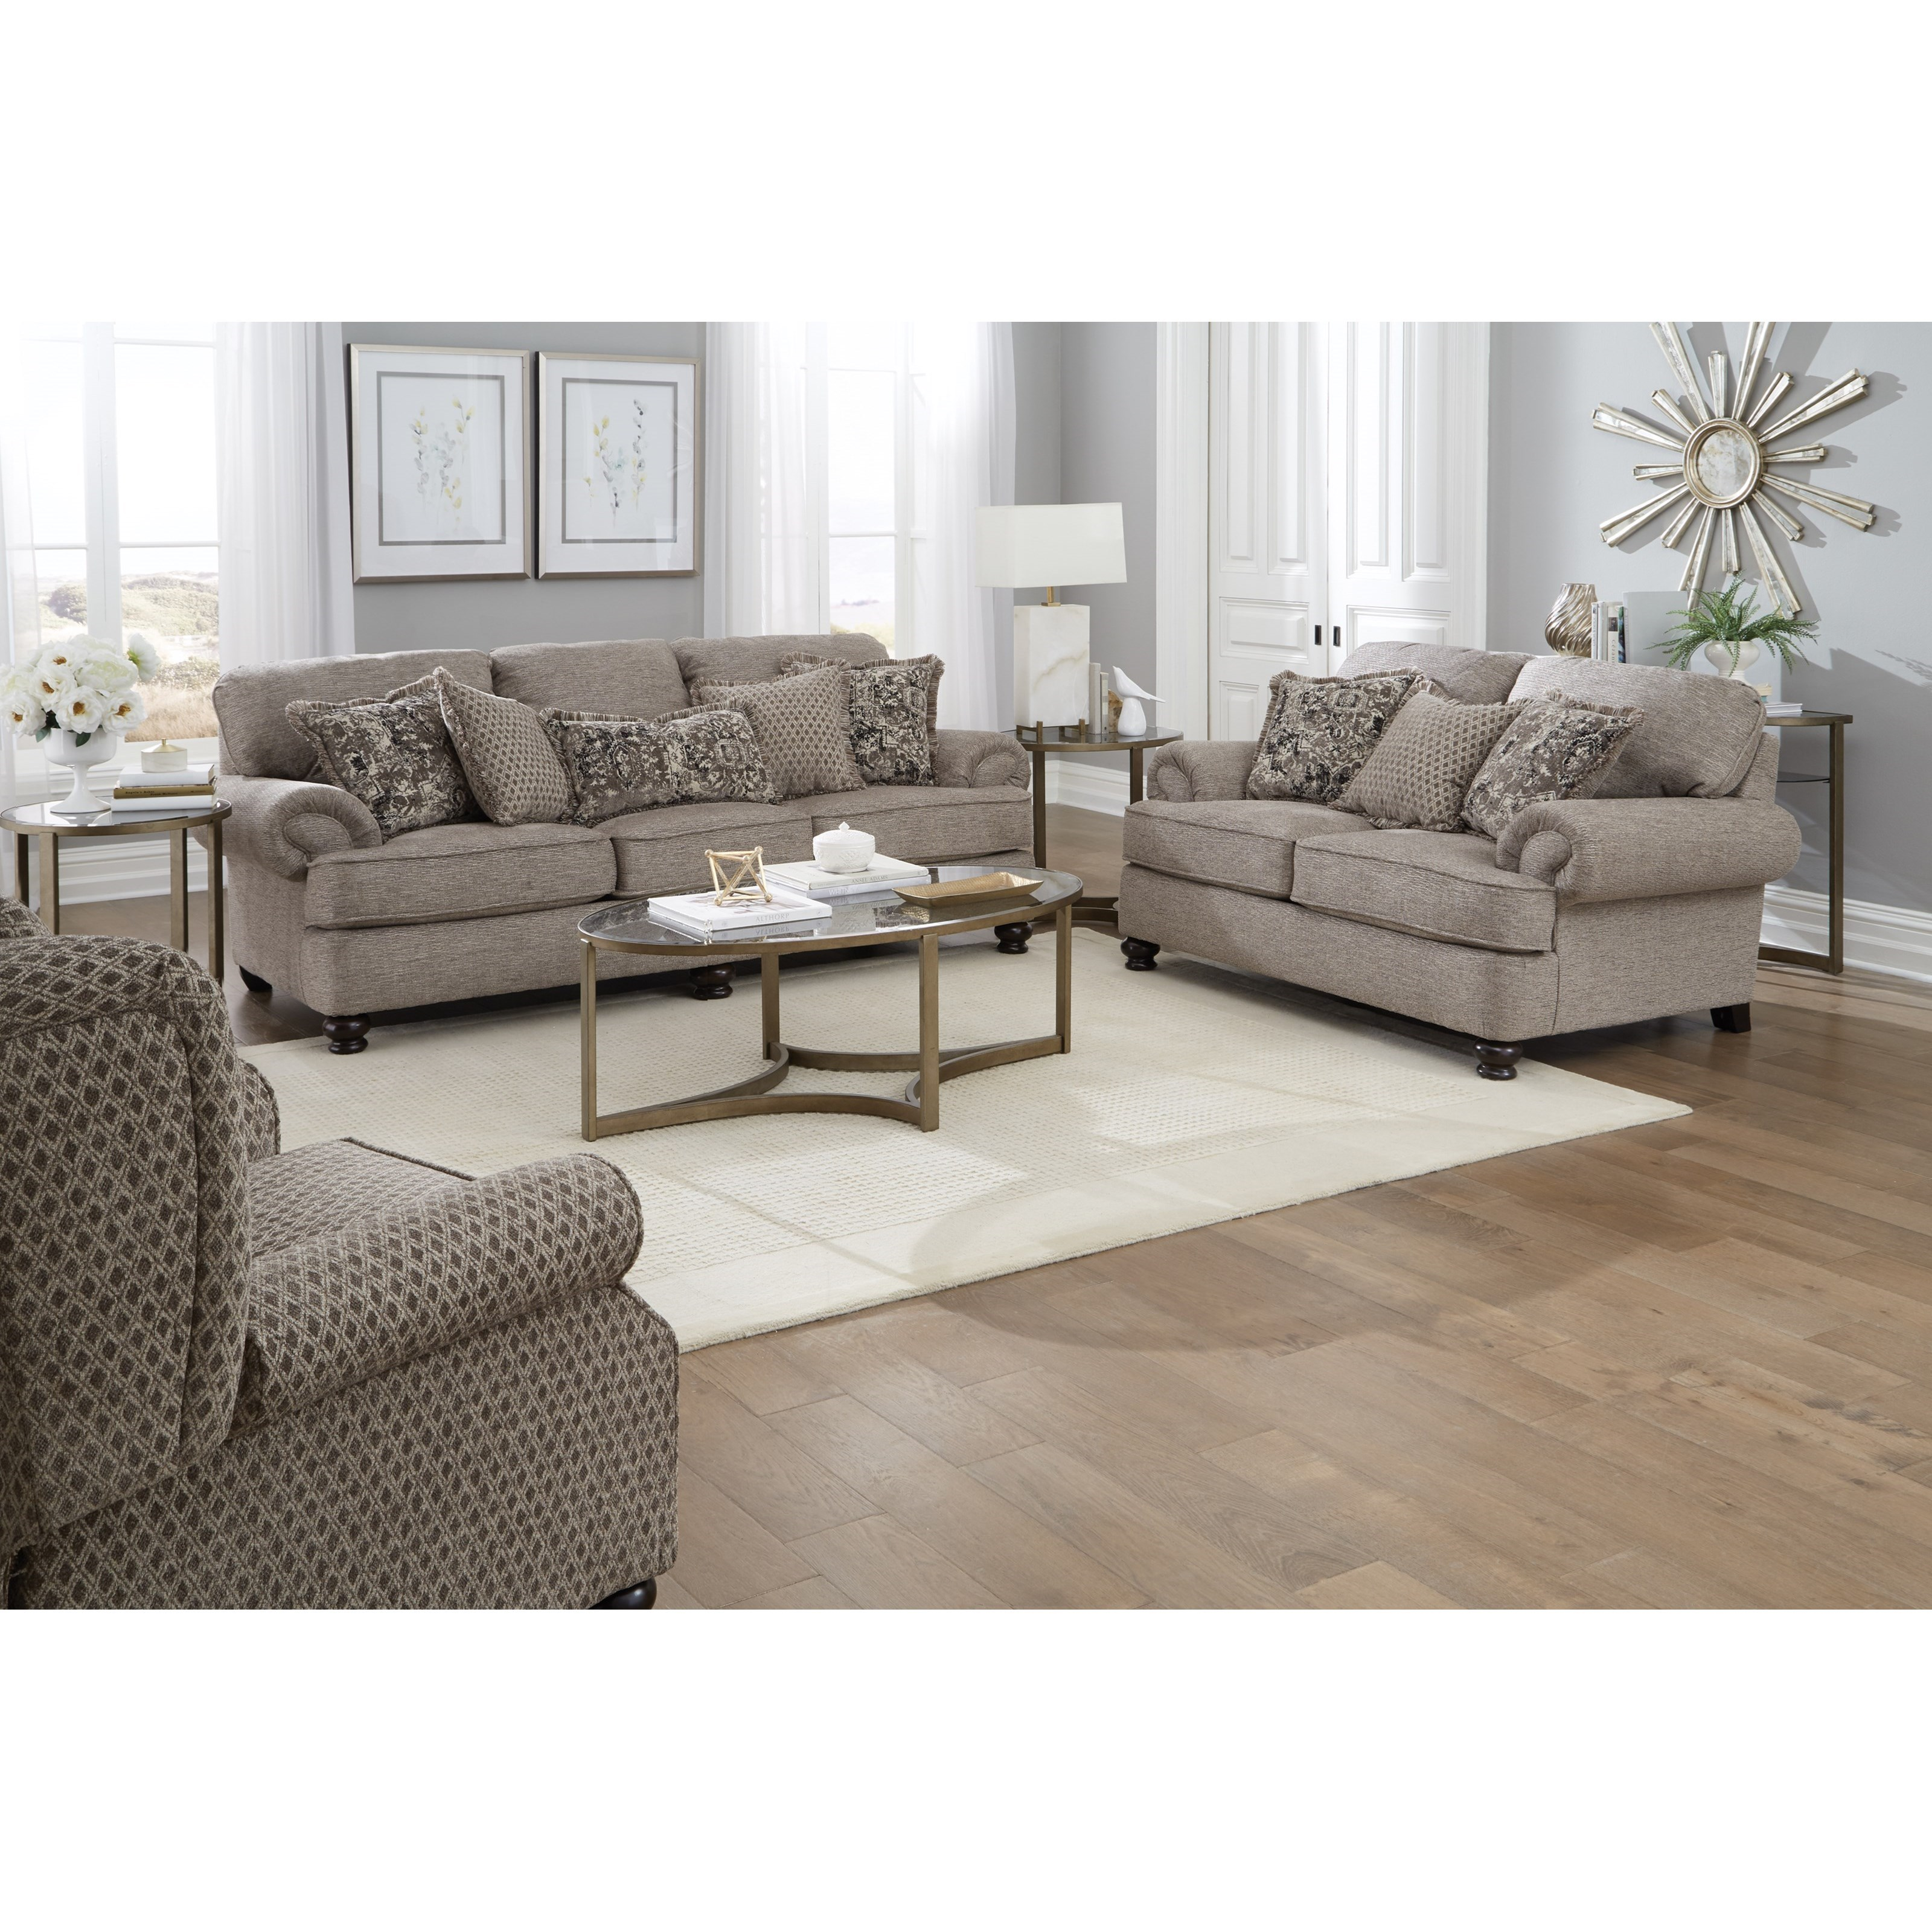 Freemont Living Room Group by Jackson Furniture at Westrich Furniture & Appliances